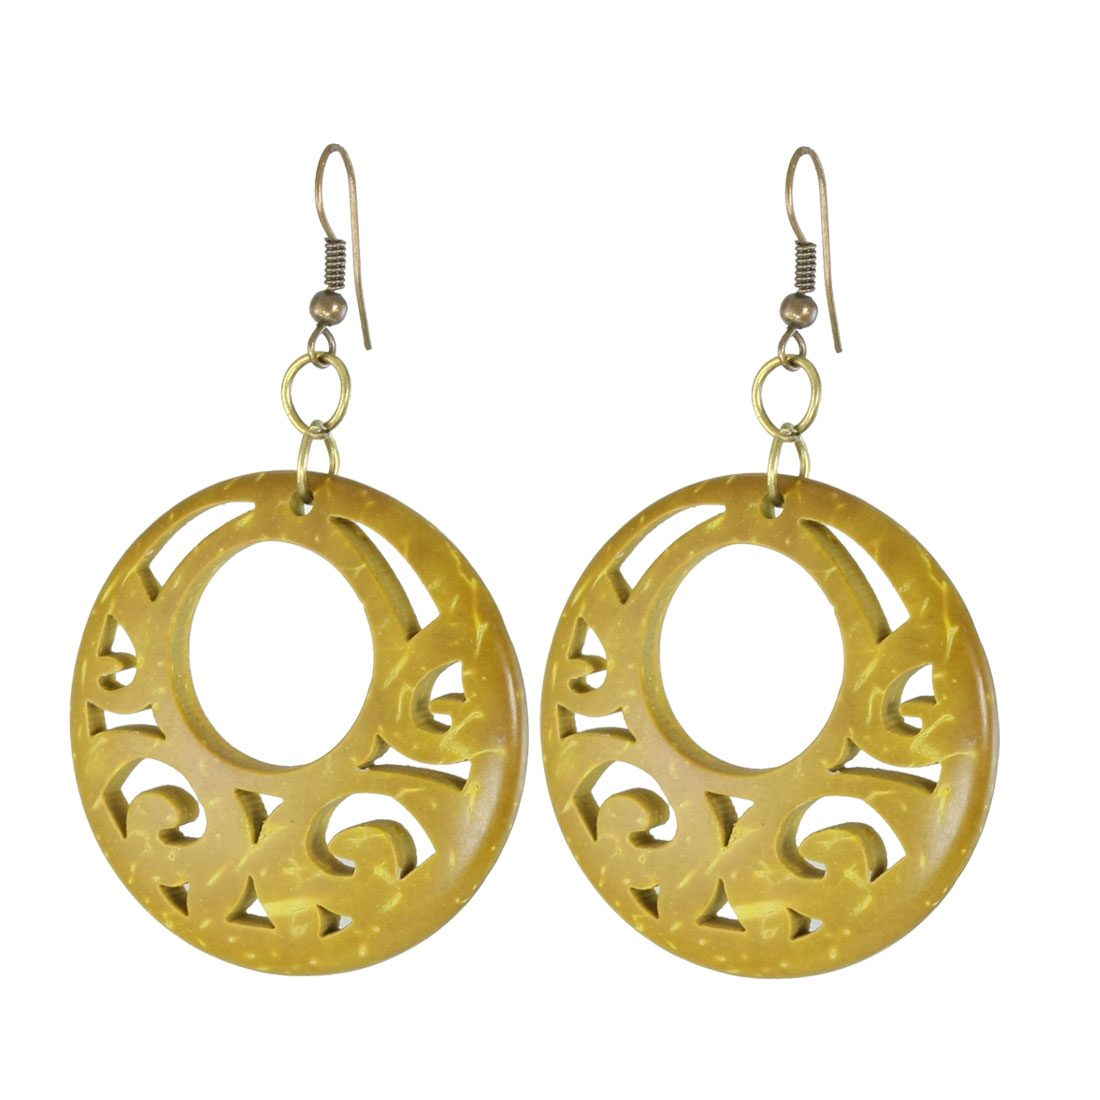 Olive Green Plastic Hollow Out Circle Shaped Pendent Fish Hook Earrings Pair for Woman